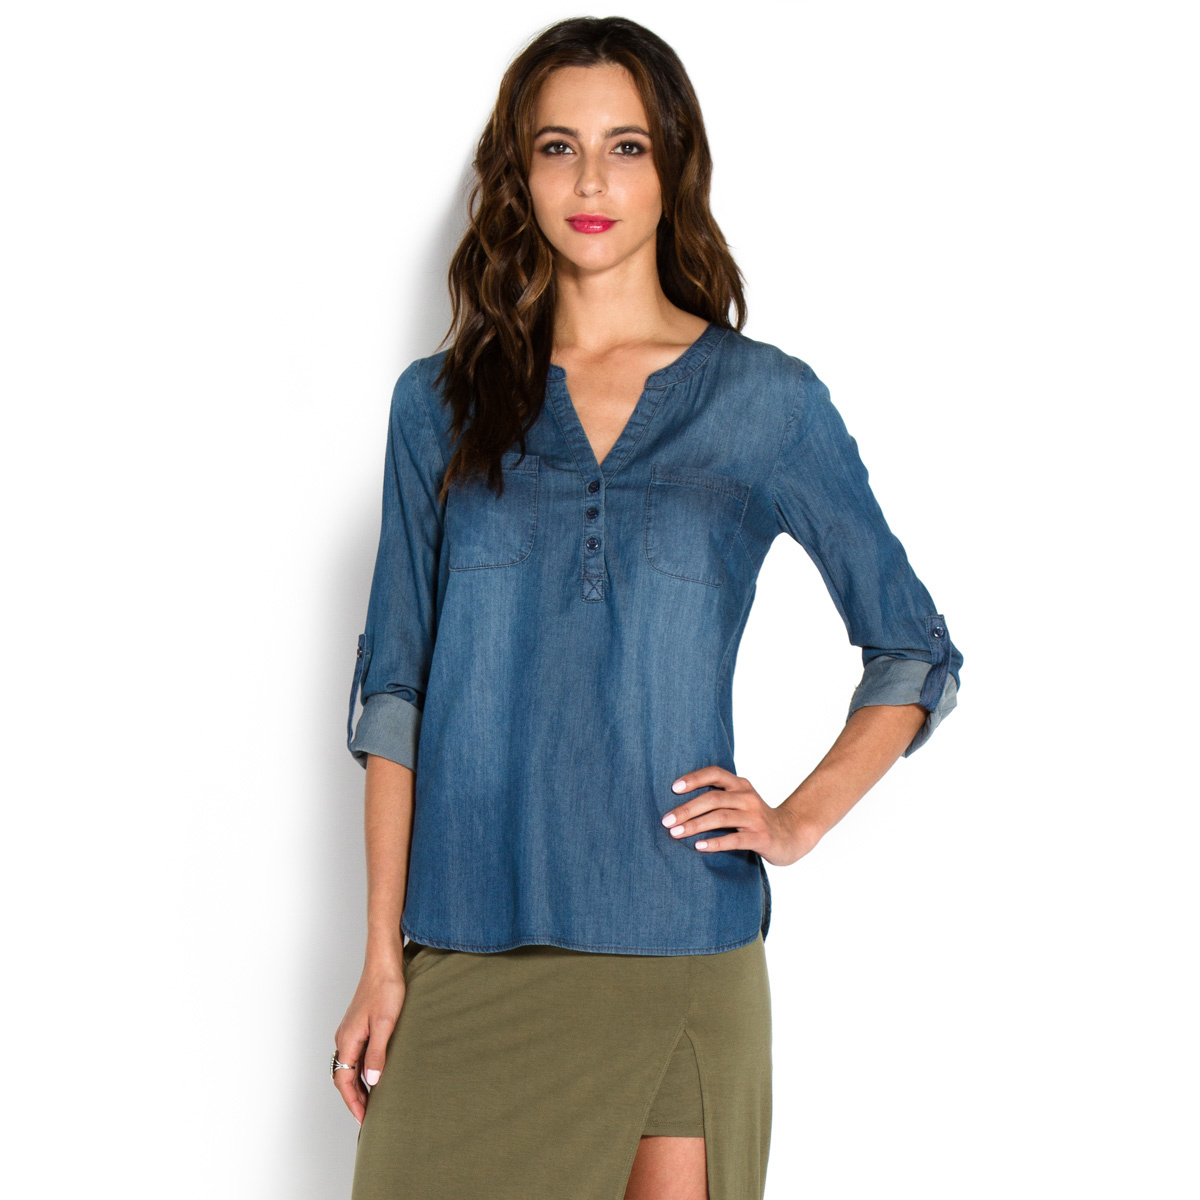 Chambray top shoedazzle for Chambray top